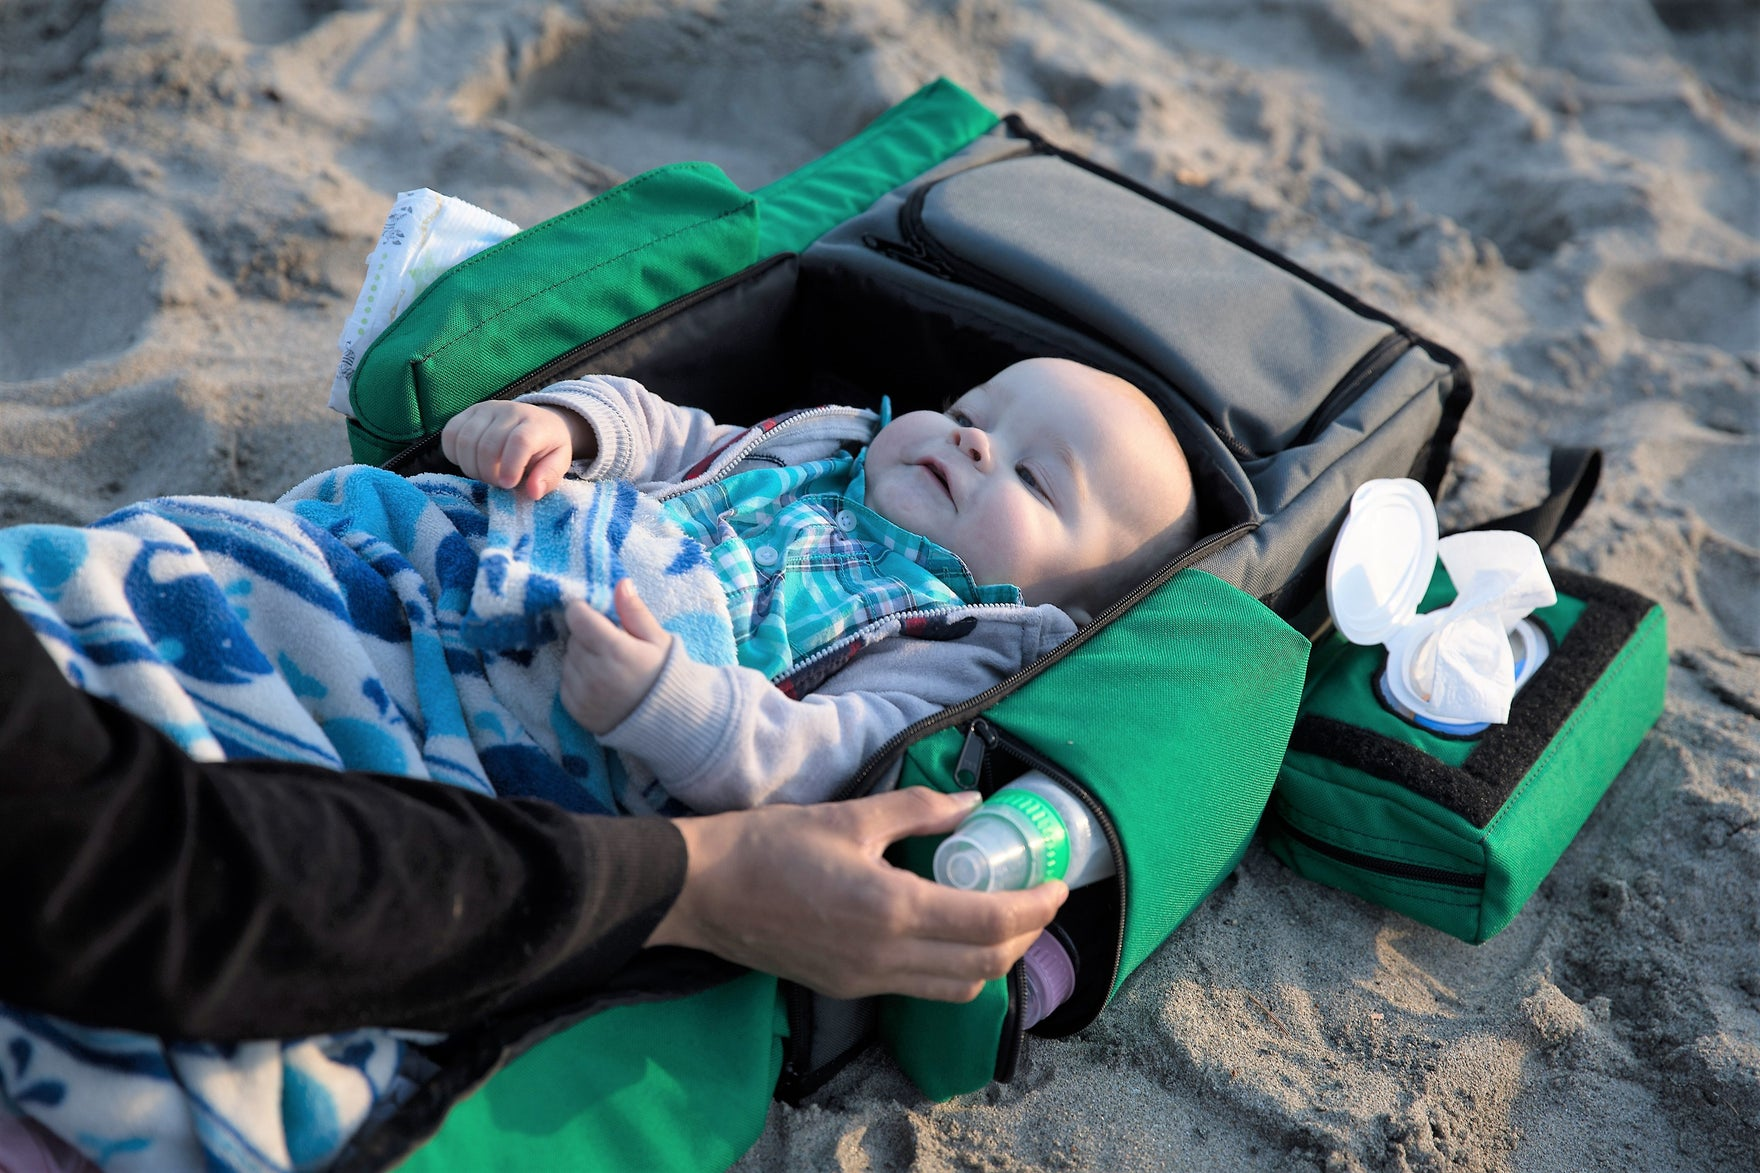 Up Up and Away! The World's Finest Portable Diaper-Changing Station with Bassinet & Coolers is Ready For Launch!